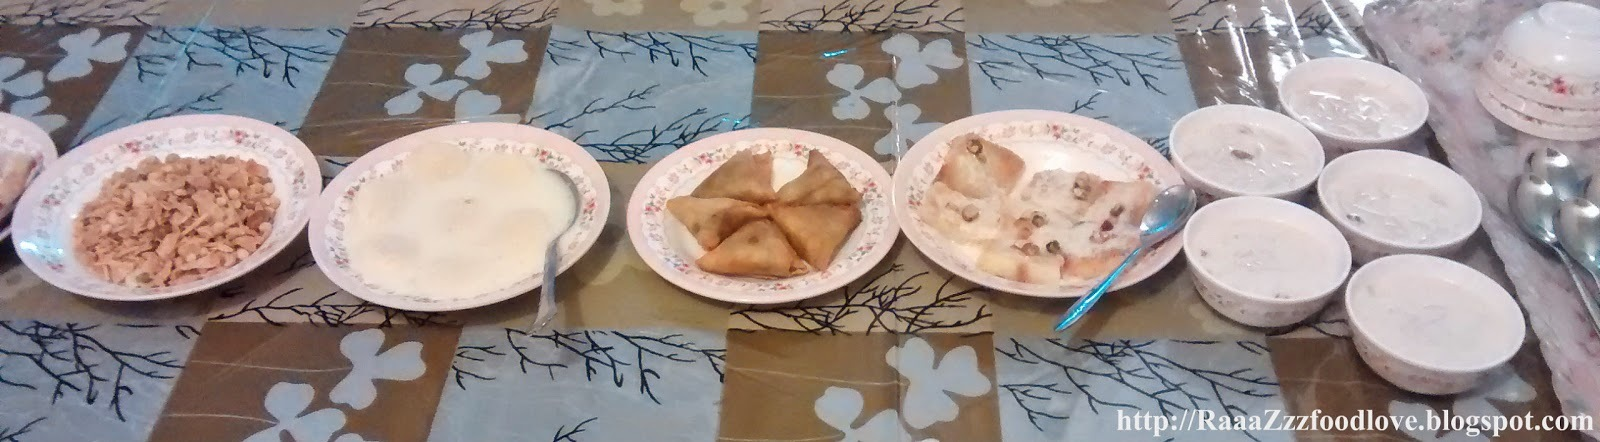 Sweet Eid celebration at my home